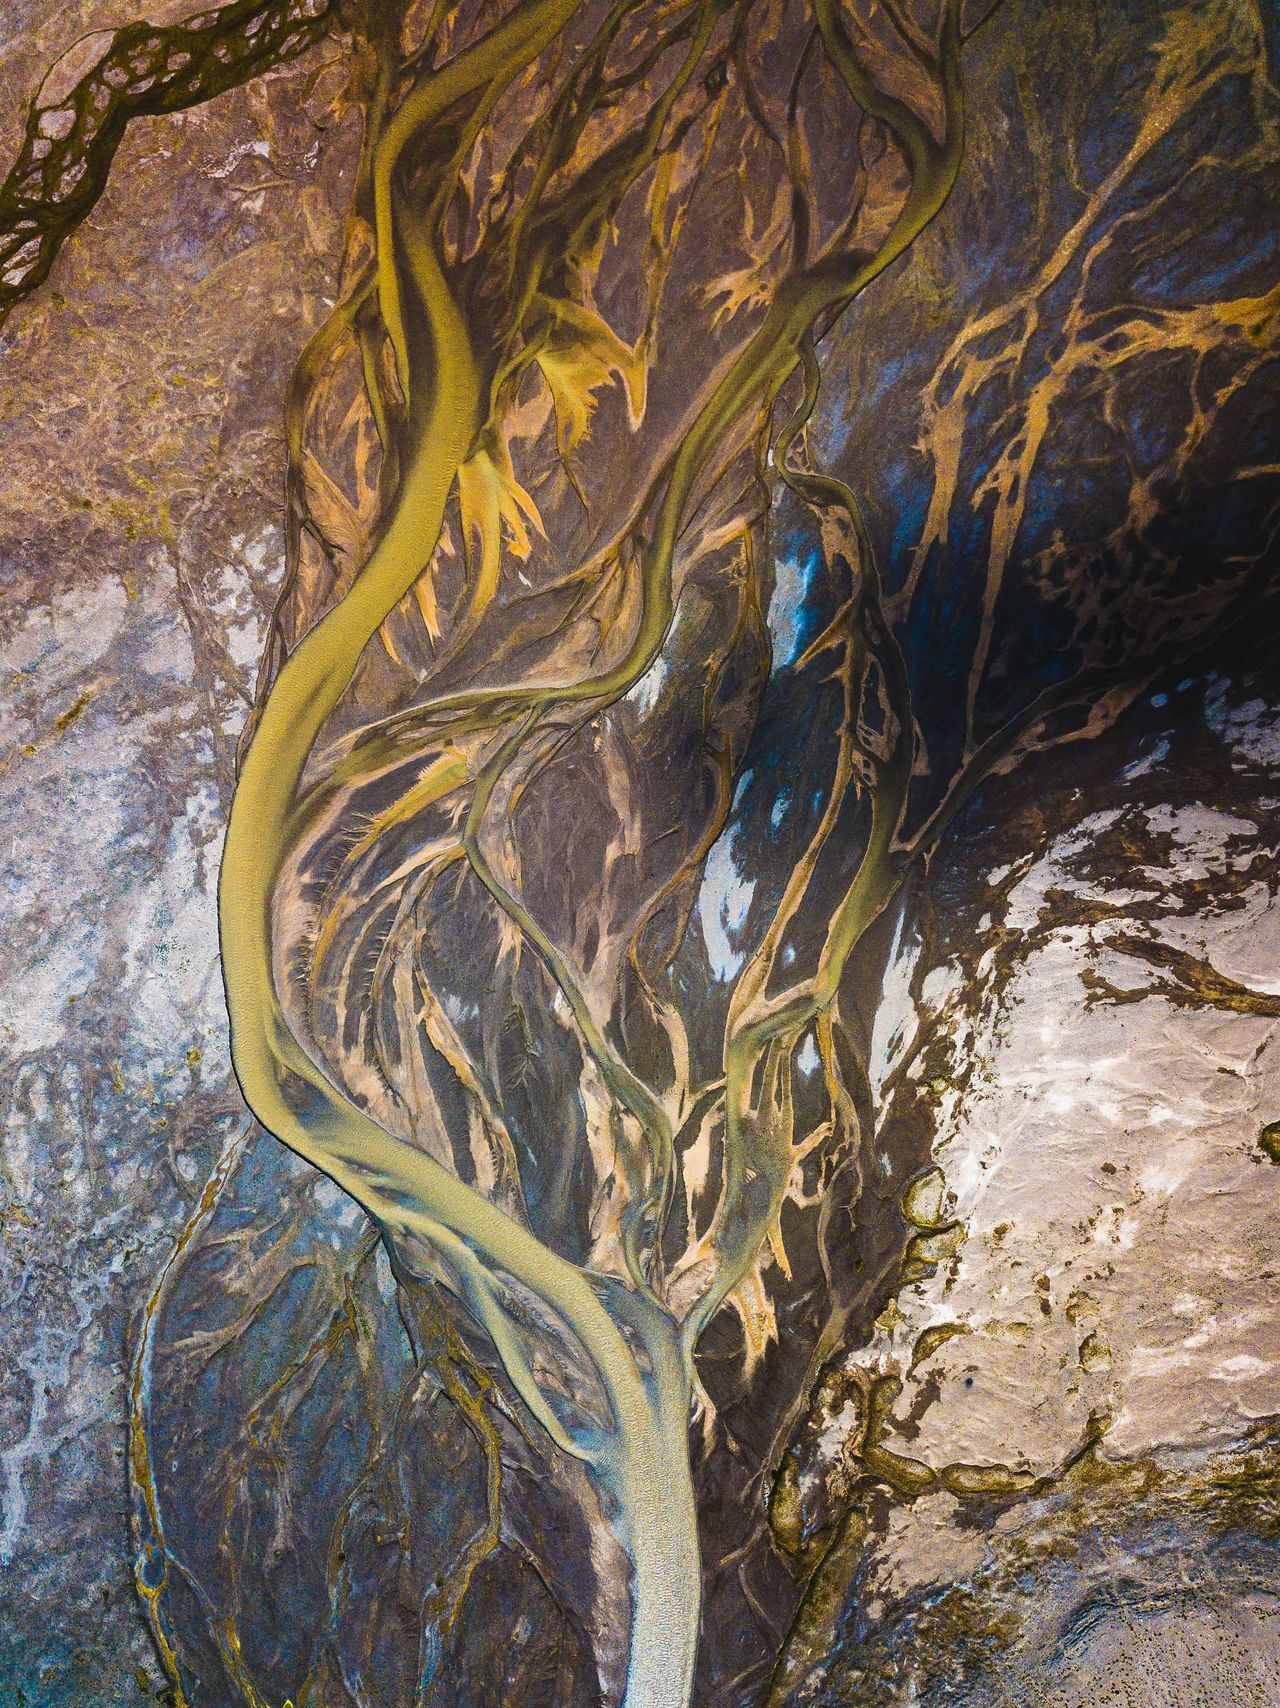 The strangled Muskol River sits along the border of Tajikistan and China. As we came over the crest I could see the arteries of the river branching out and knew this would look good from the air. Little did I know the colours that were running throughout the silt and salt. One of my favourite images to date. Abstract Photography EyeEm Best Shots EyeEm Nature Lover River view Tajikistan abstract beauty in Nature day geology high angle view landscape Nature no people outdoors pattern physical geography river scenics Textured Tree water week on eyeem winding road Perspectives on Nature